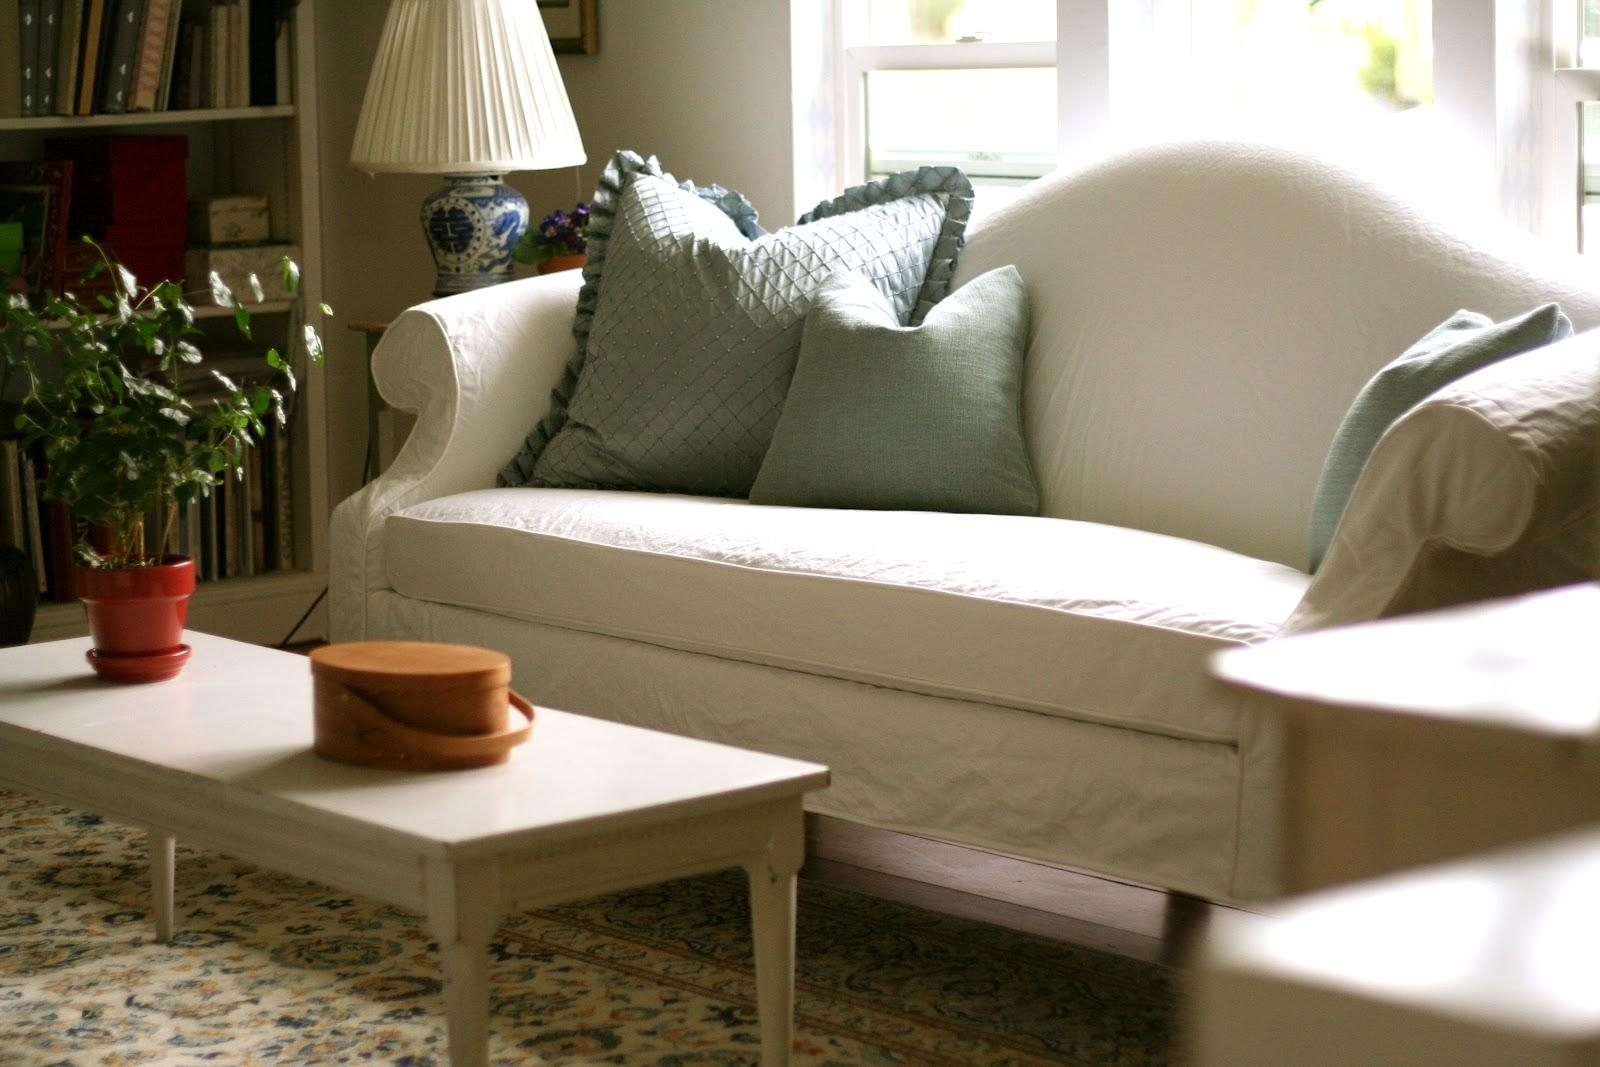 Custom Slipcoversshelley: White Camel Back Couch Pertaining To Camel Back Sofa Slipcovers (Image 8 of 20)